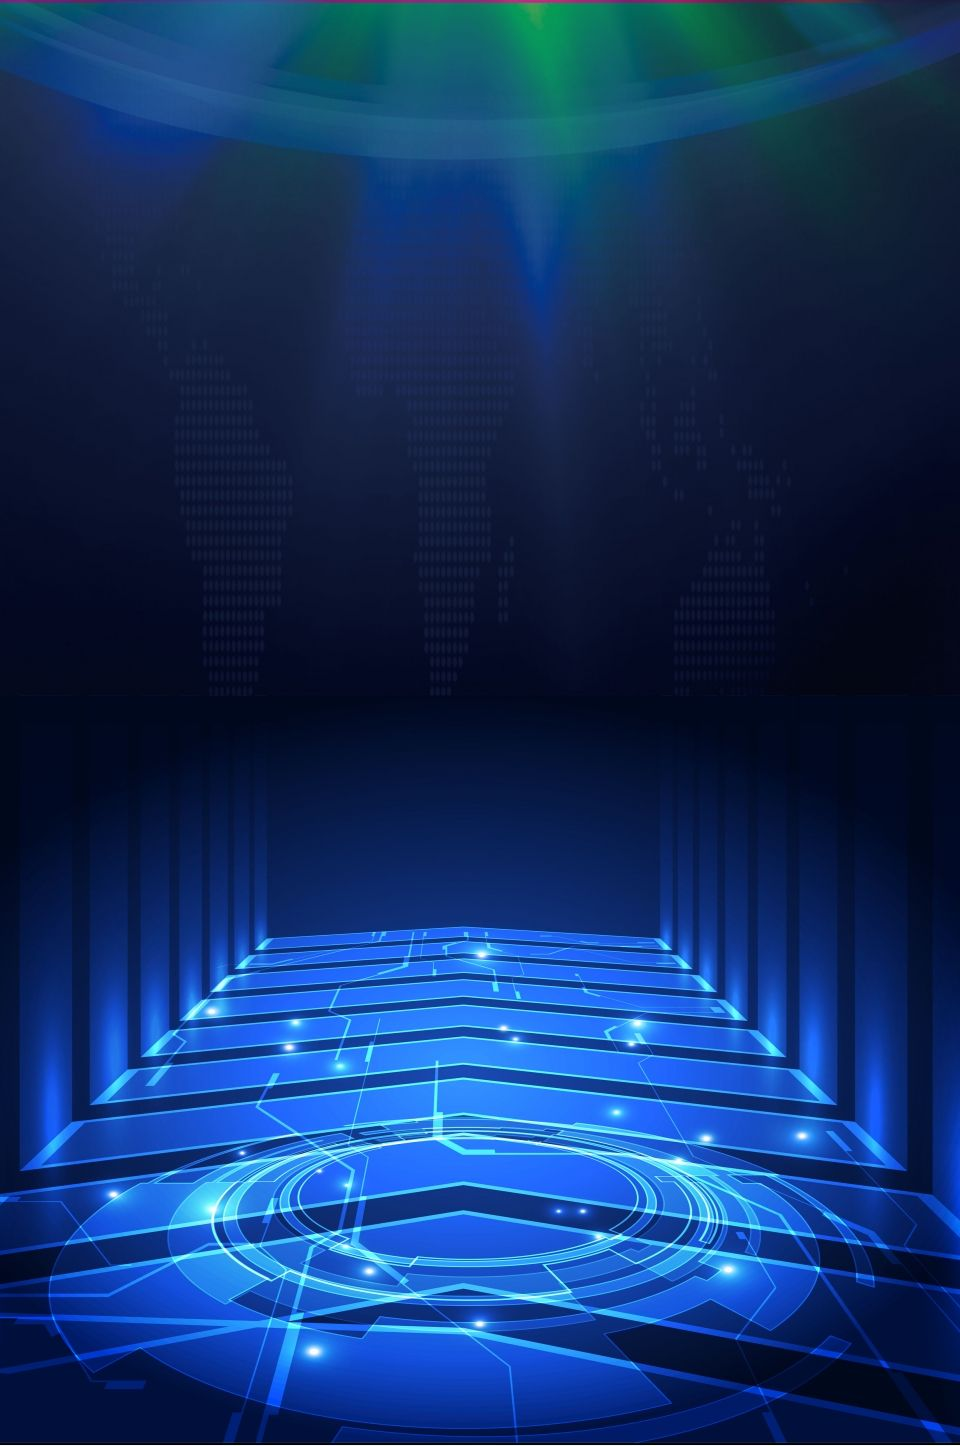 Blue Light Technology Stripes In 2020 Background Images Photoshop Digital Background Photo Background Images